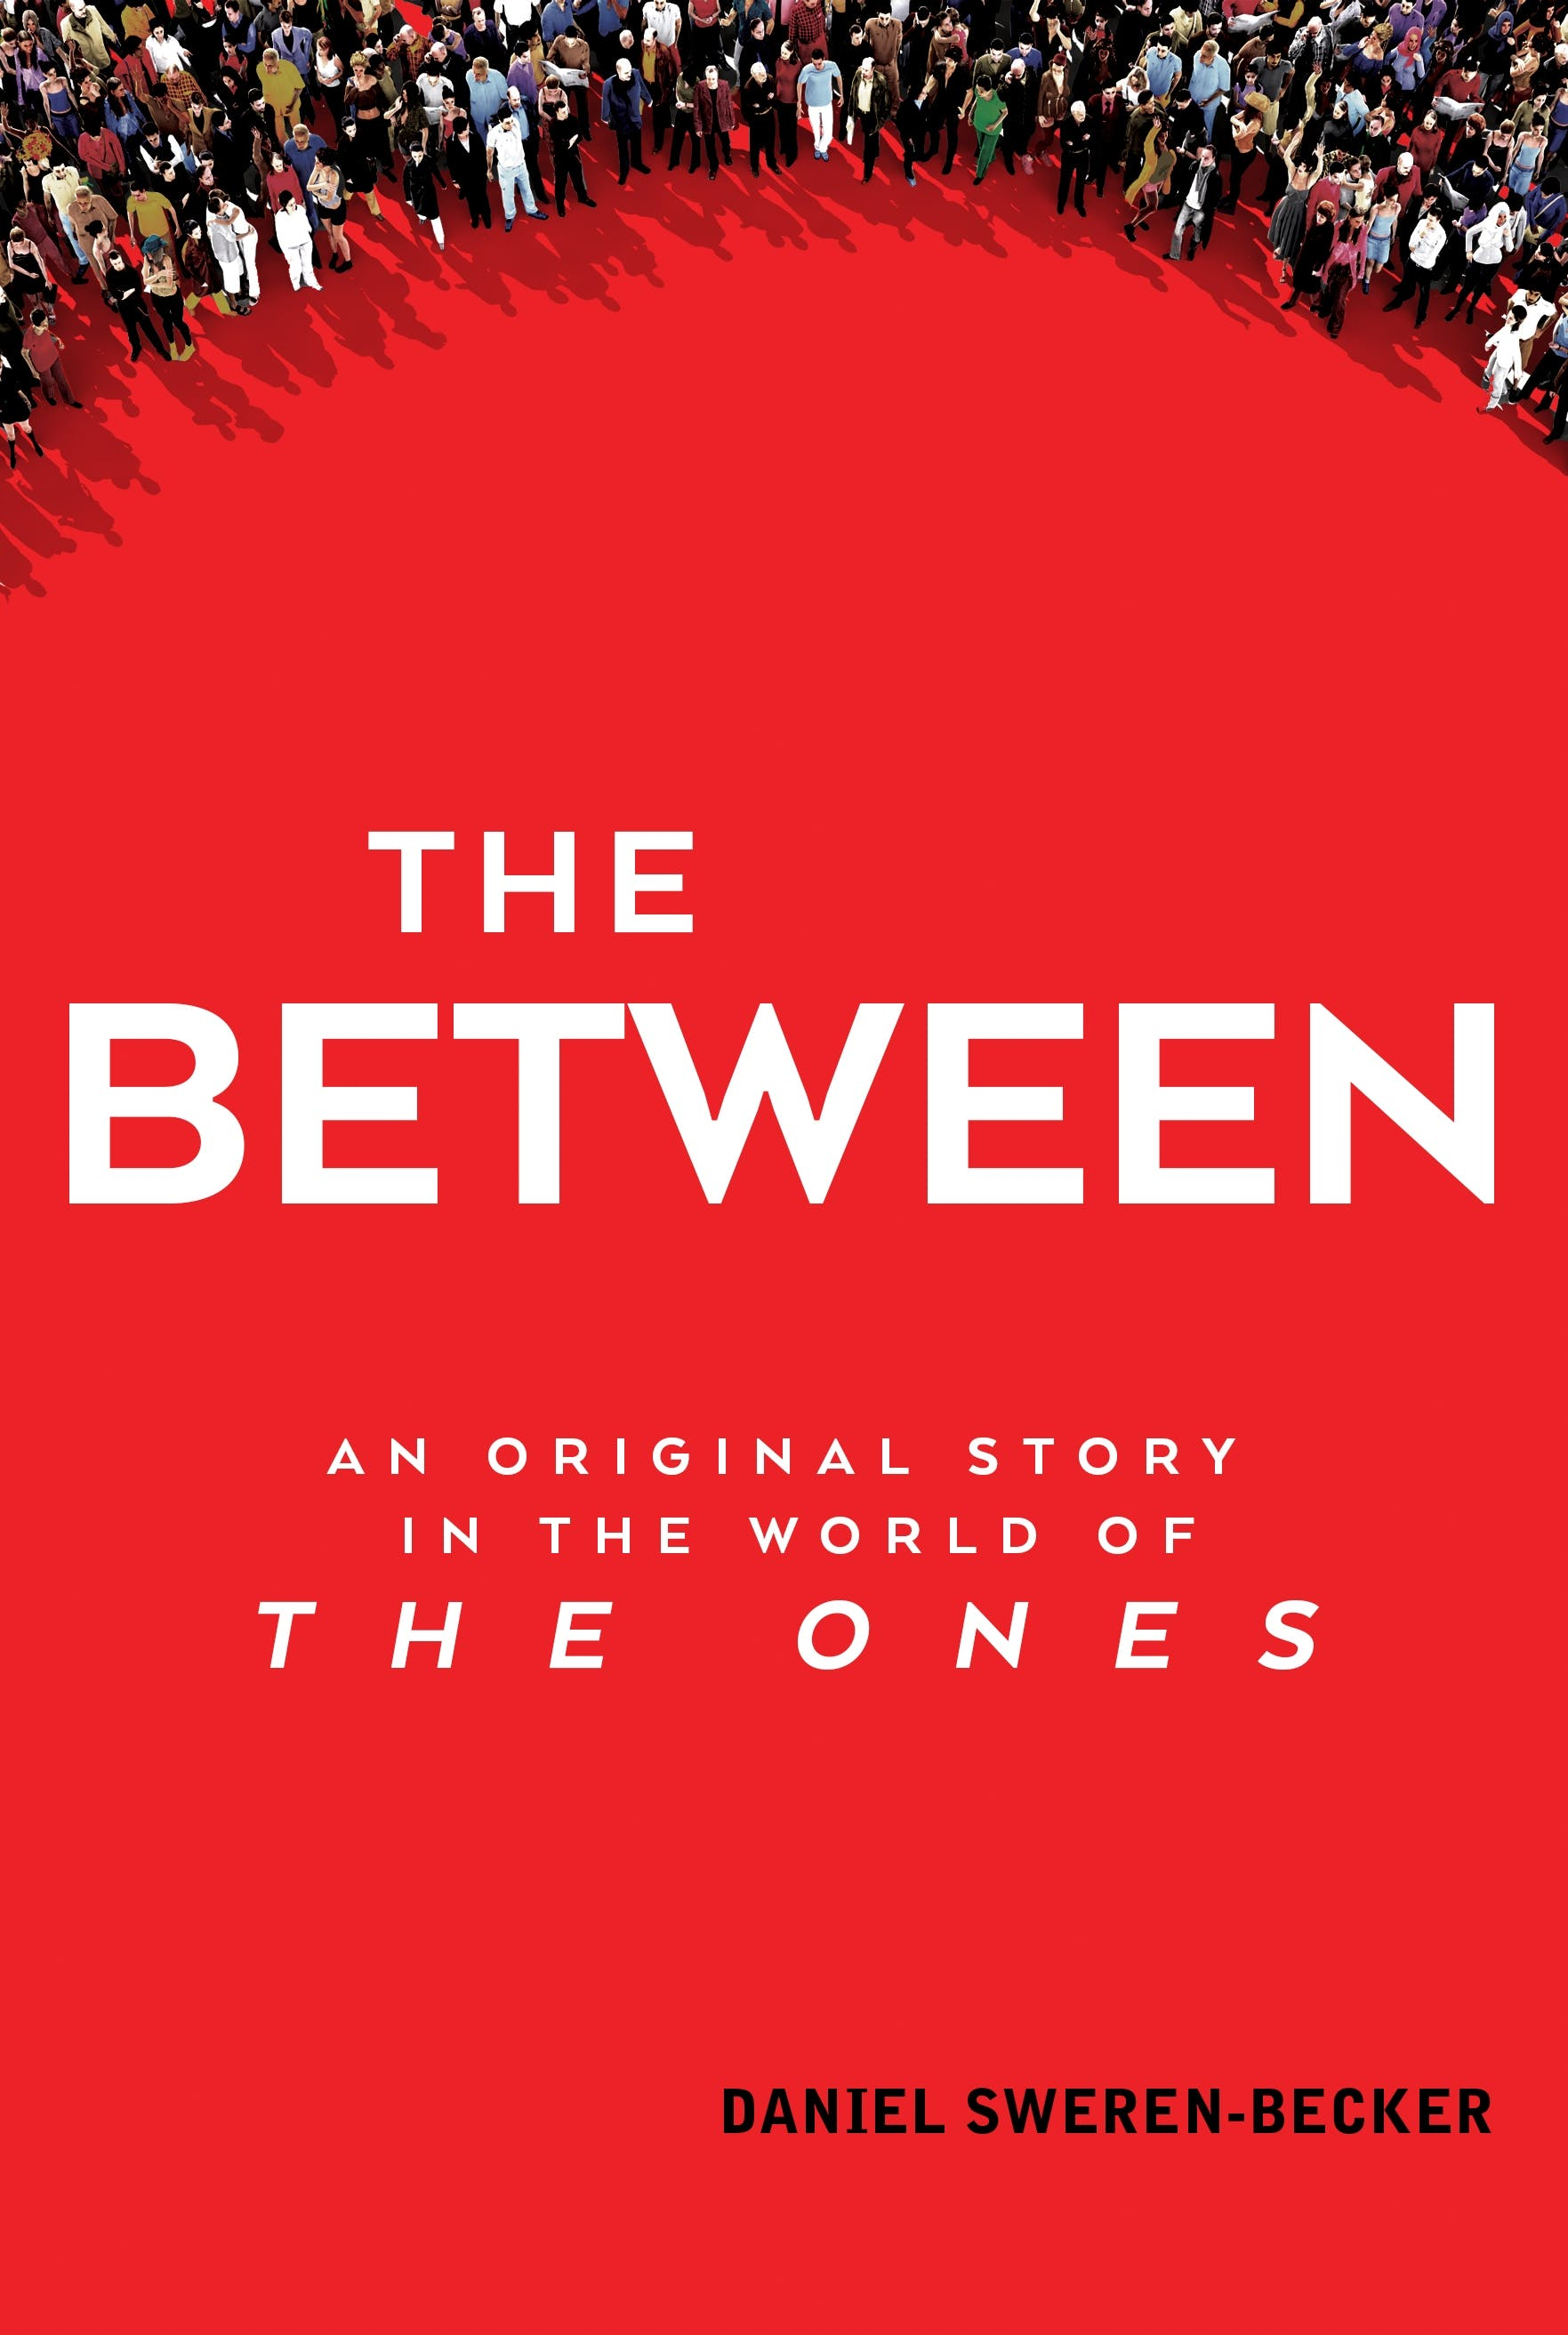 Image of The Between